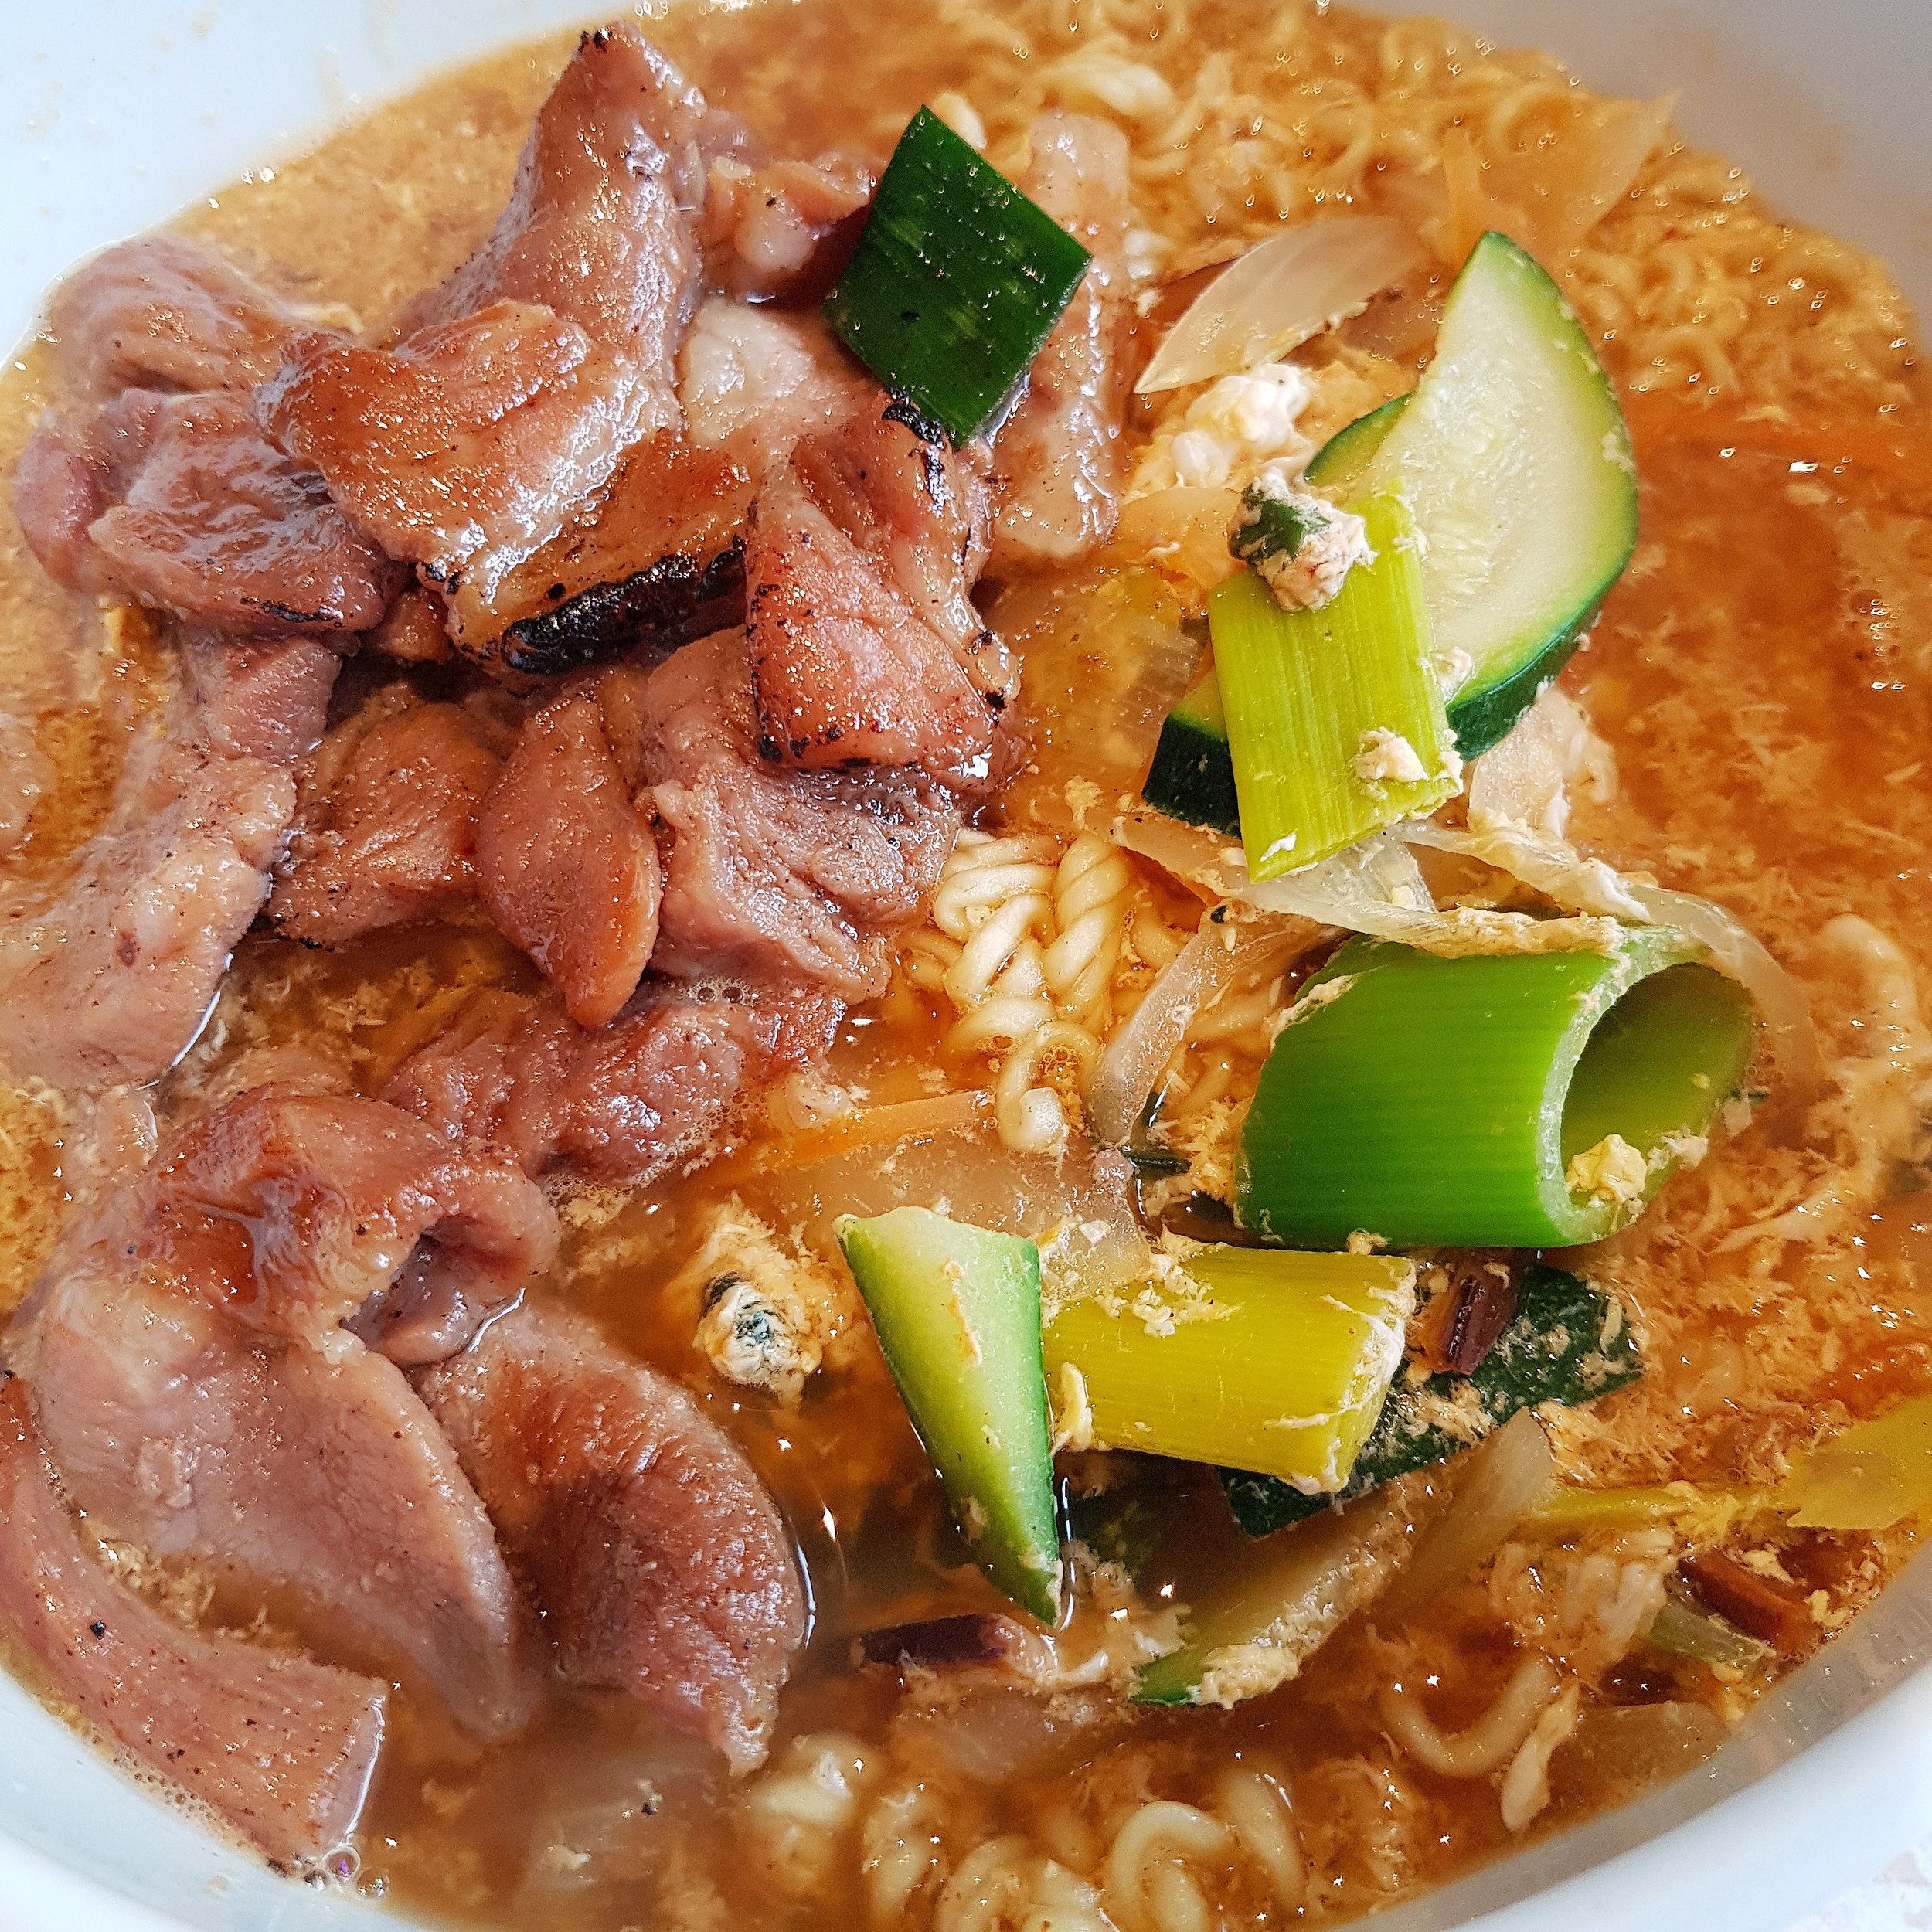 BAB Korean Restaurant Pork Ramyun Noodle Soup Grafenwoehr Germany